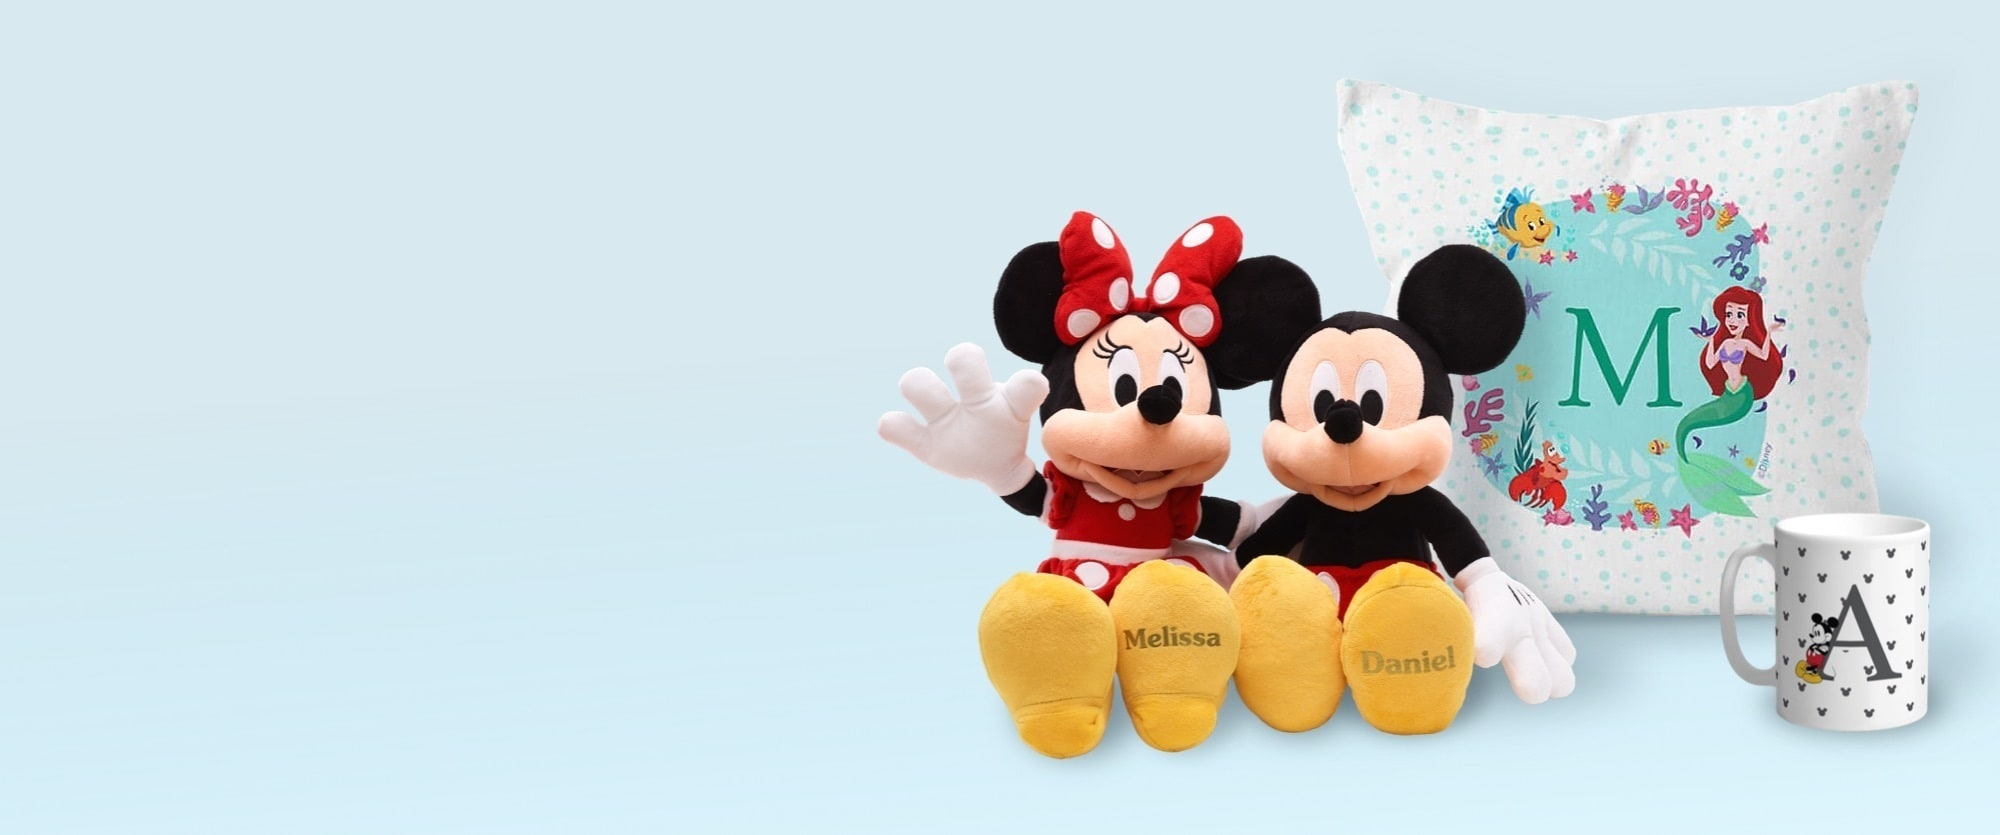 shopDisney | Personalised Gifts Article Hero